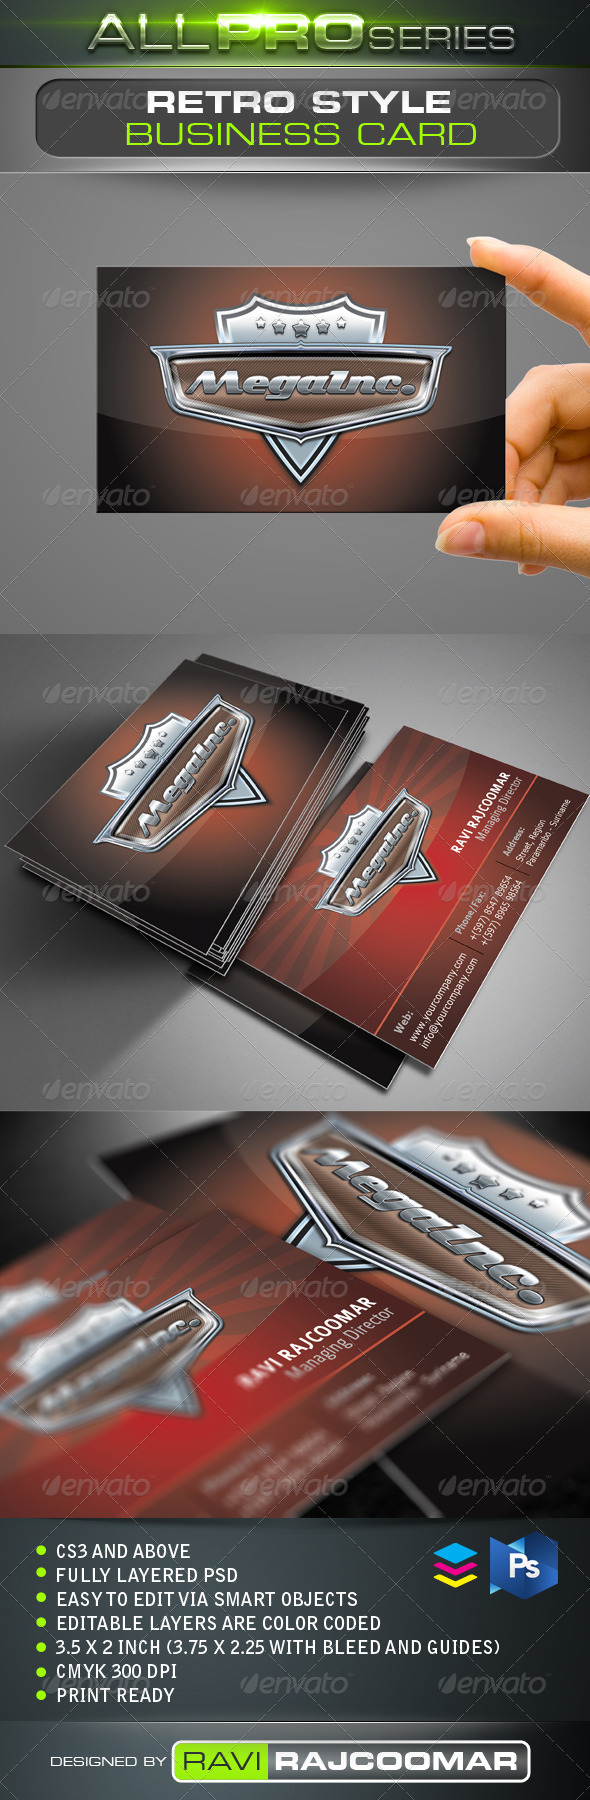 Business and professional vintage business card templates designs reheart Image collections